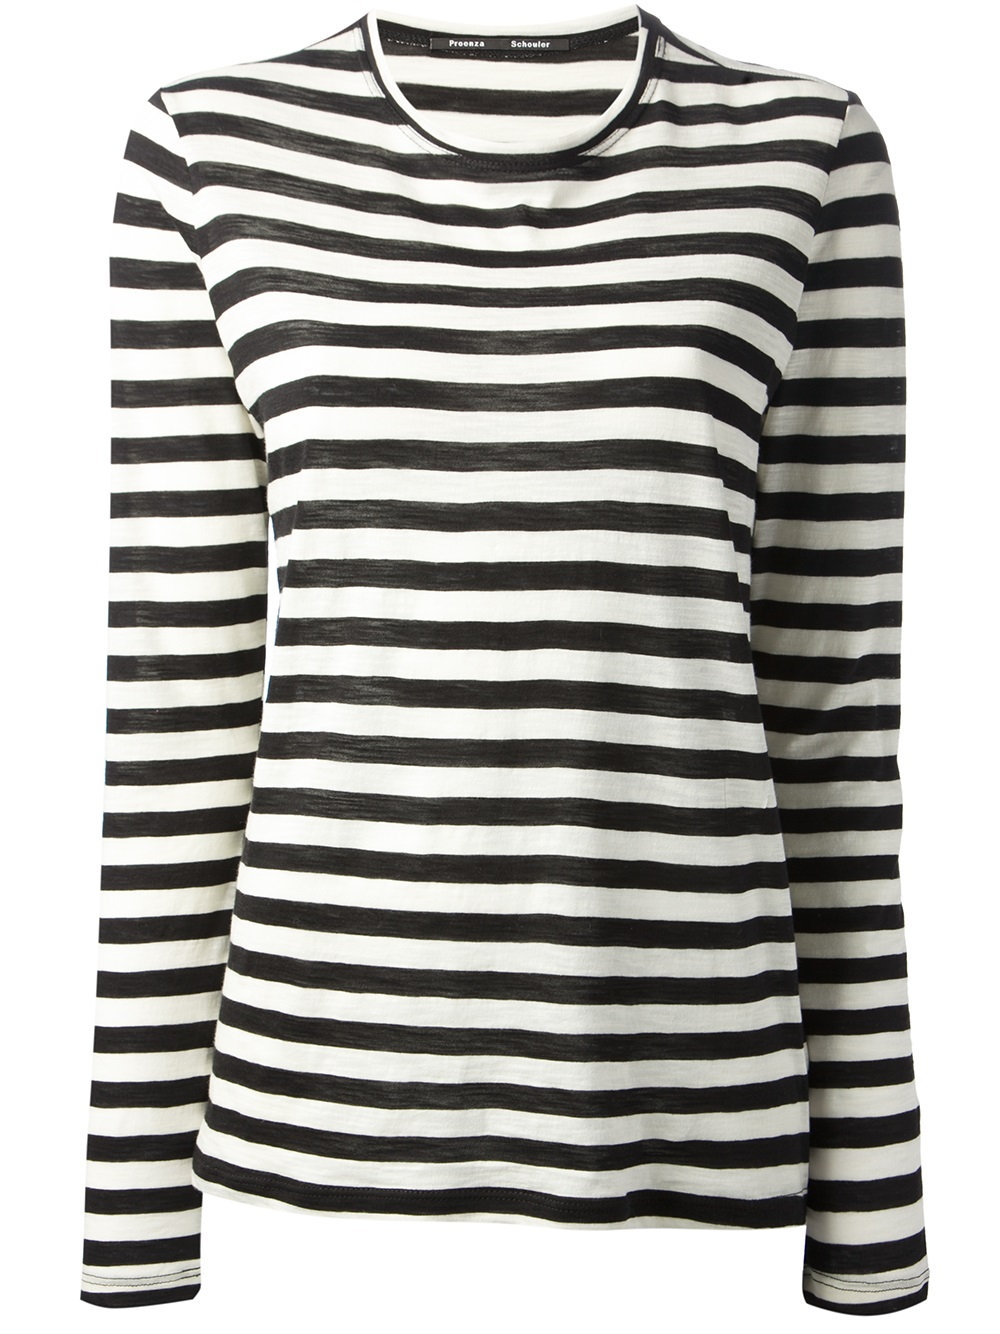 Lyst - Proenza schouler Striped Long Sleeve Tshirt in Black